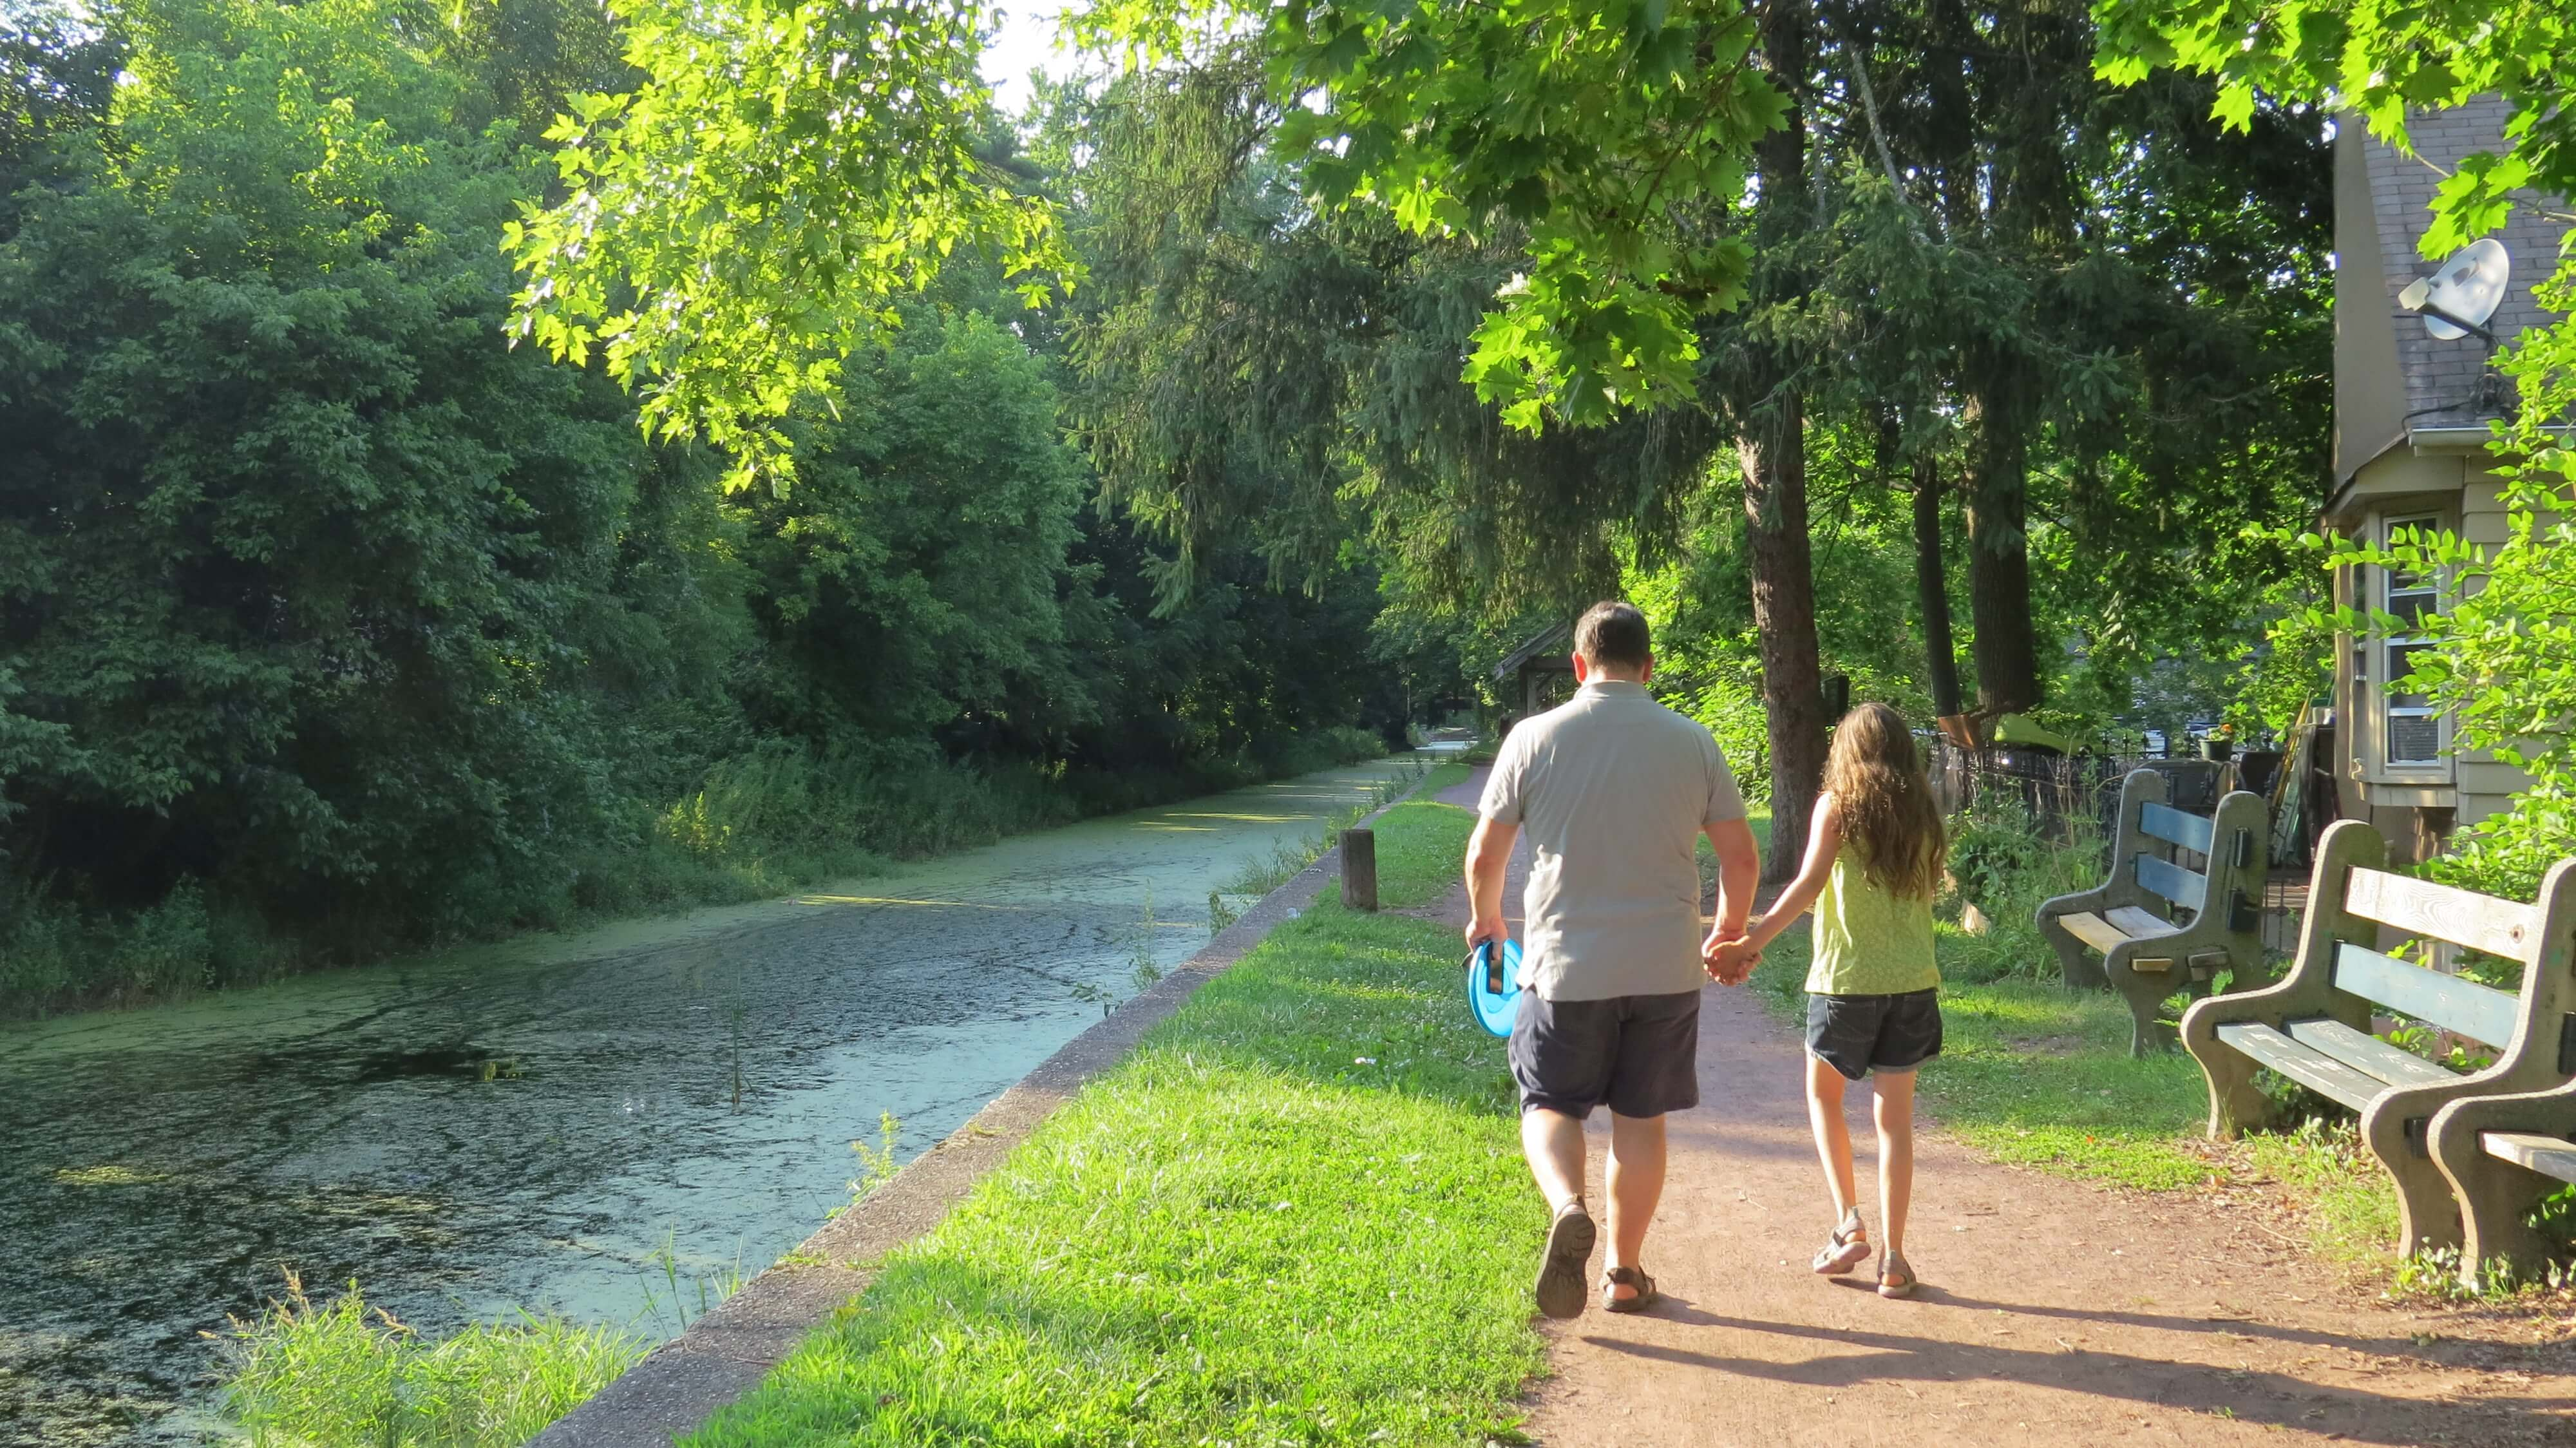 delaware canal tow path 2